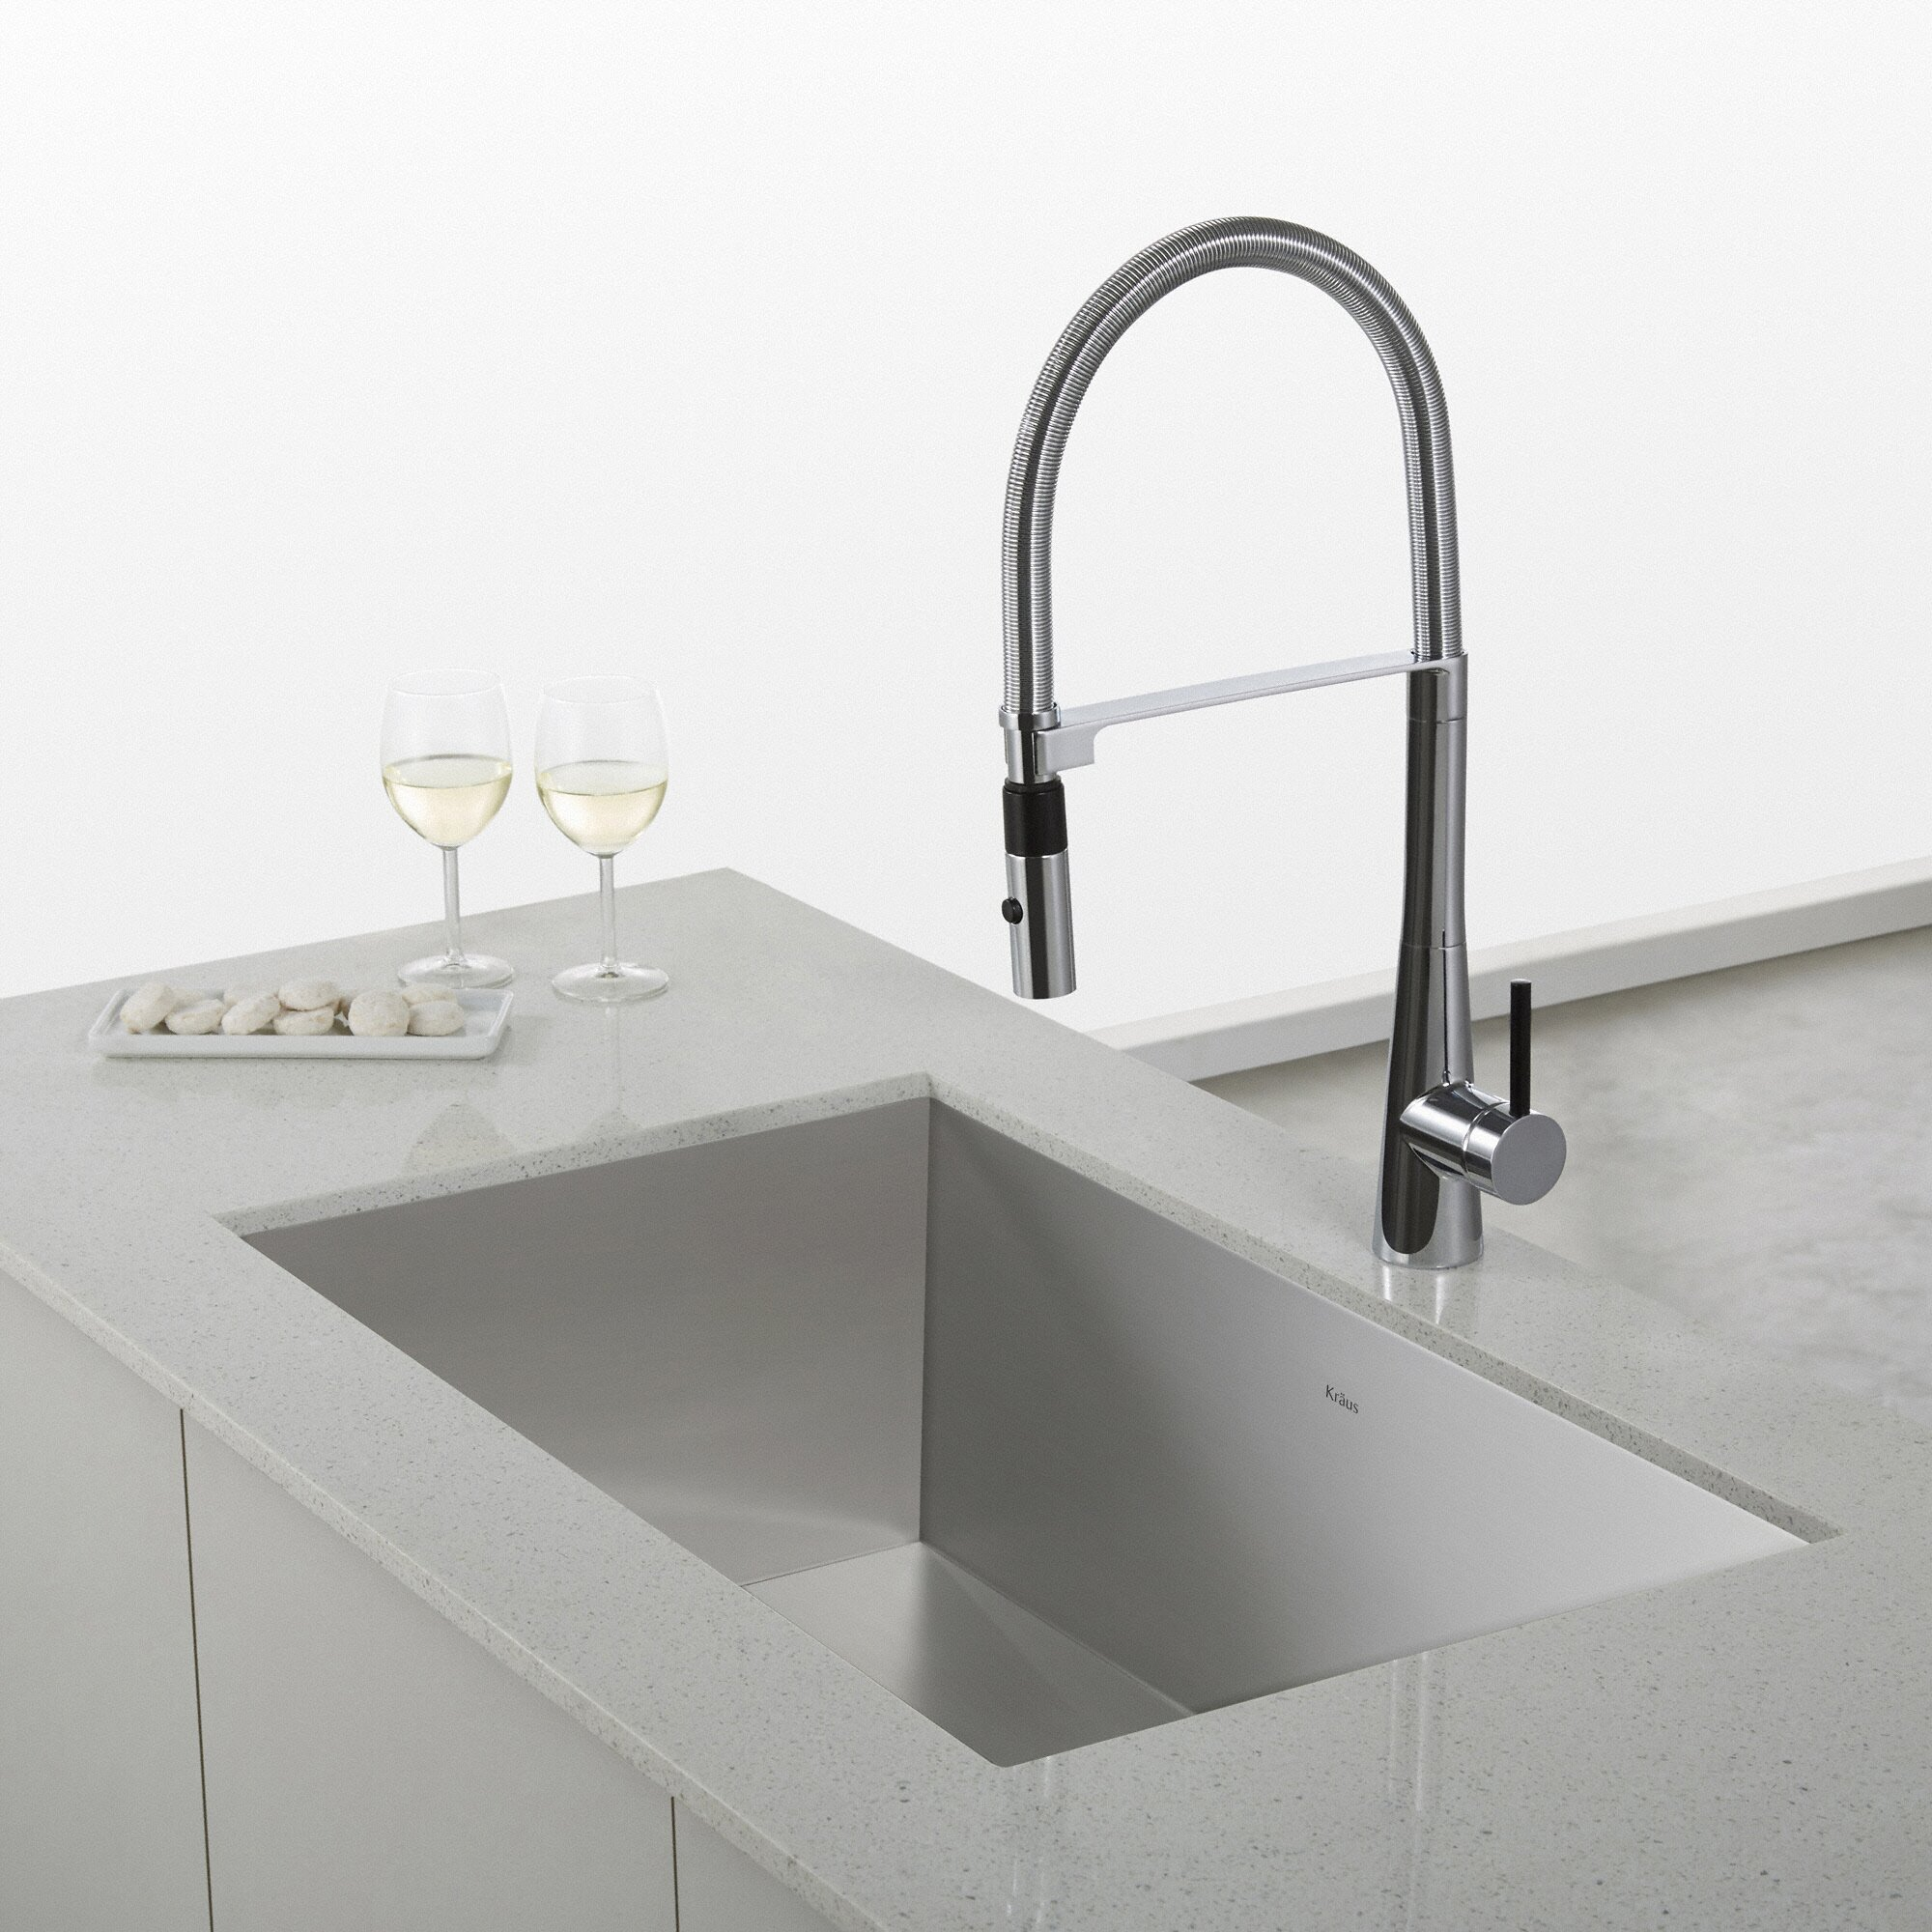 Kraus Crespo™ Single Lever mercial Style Kitchen Faucet